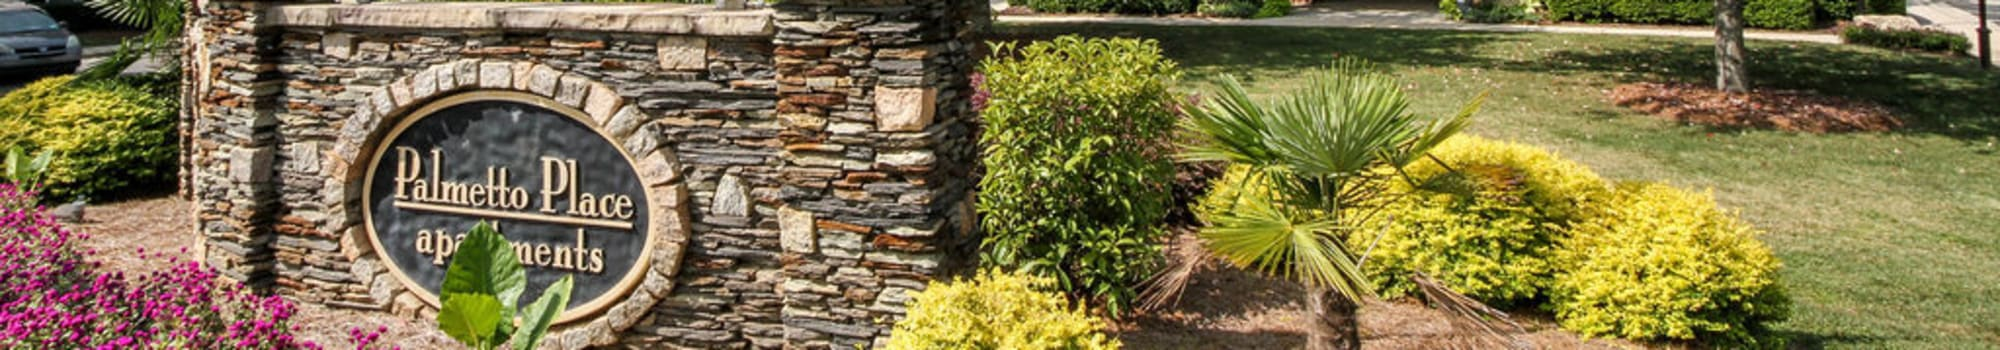 Privacy Policy for Palmetto Place in Fort Mill, South Carolina